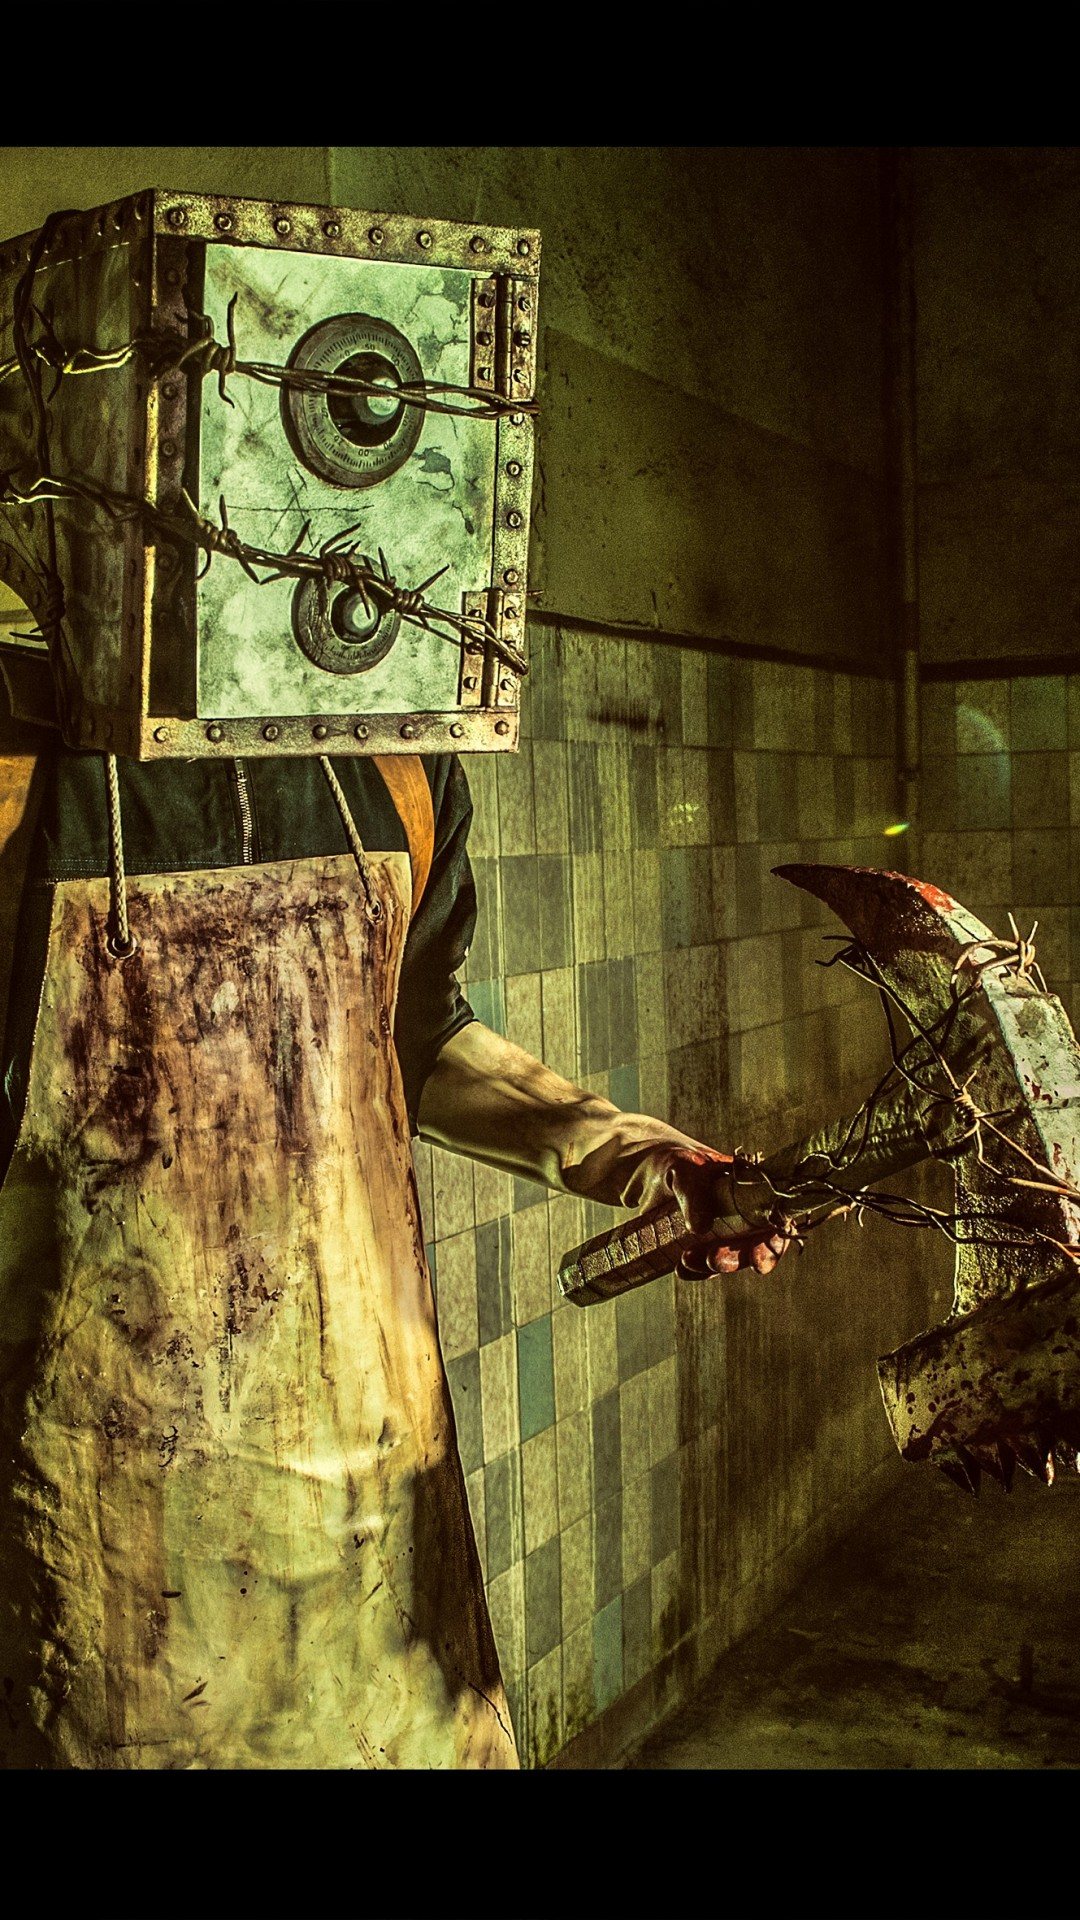 Wallpaper The Evil Within Game Survival Horror Evil Within The Keeper Boxman Axe Monster